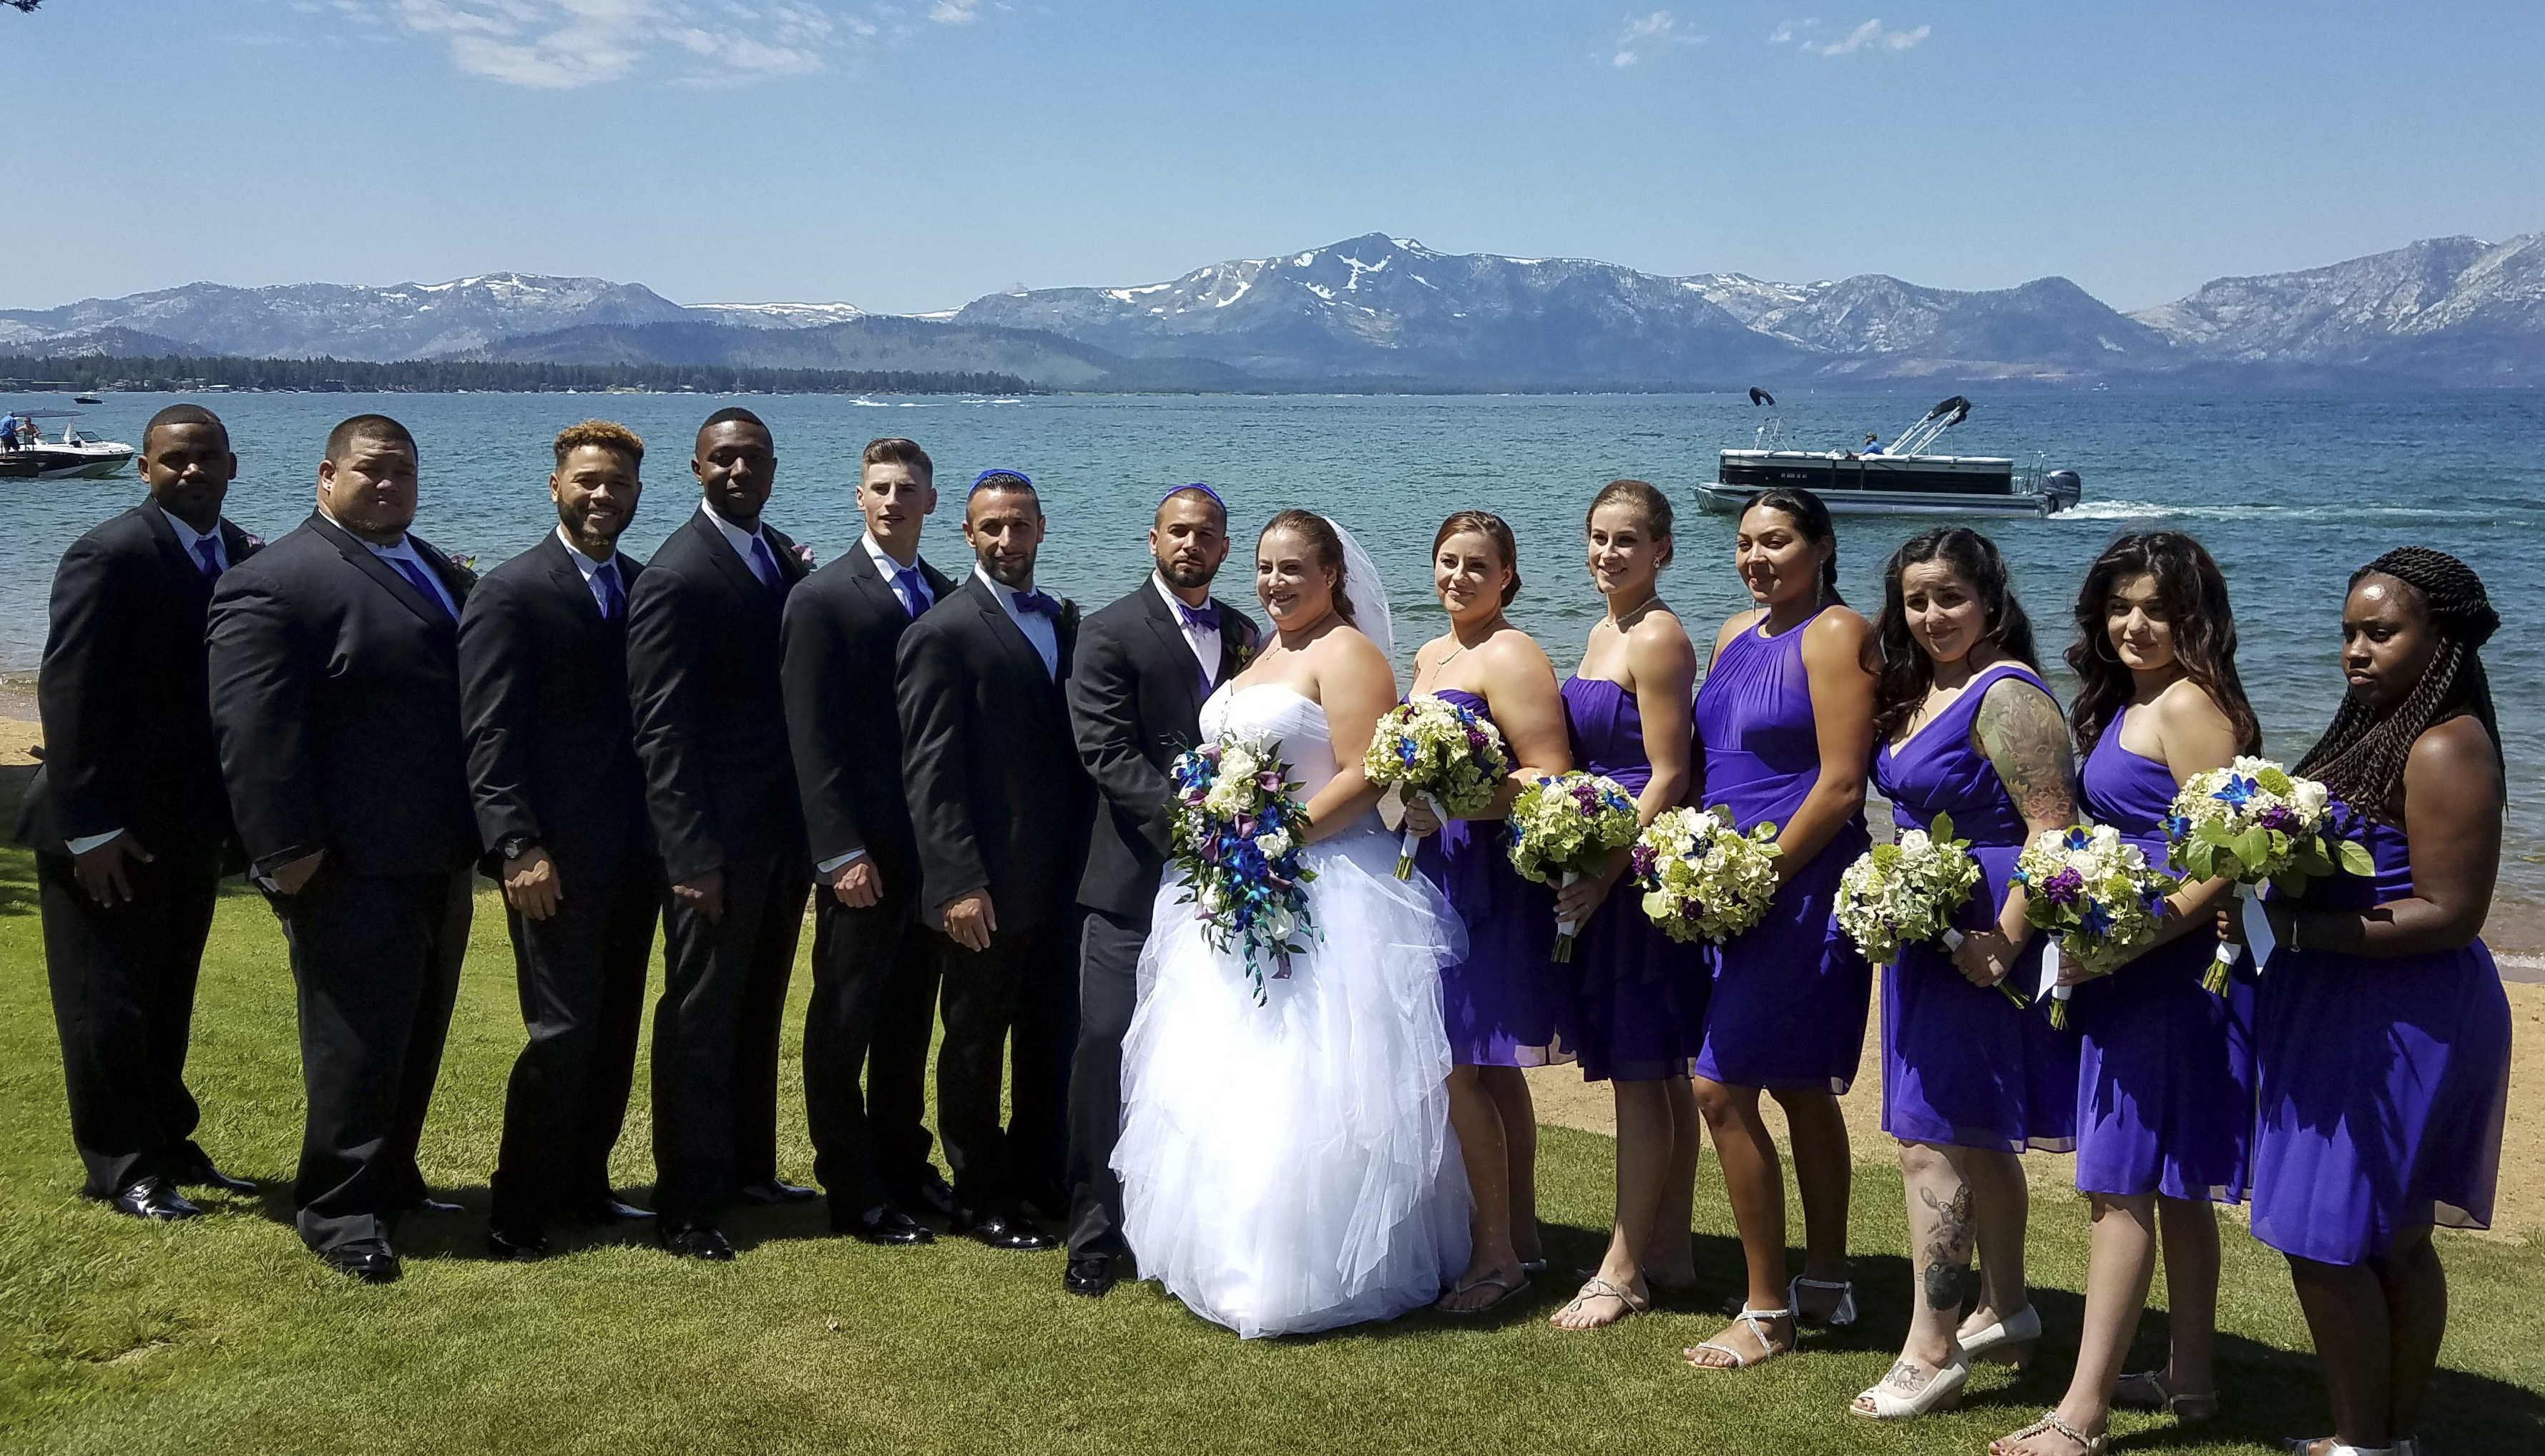 Jon and Amanda (Lafferty) Zrihen with their wedding party at their Lake Tahoe wedding